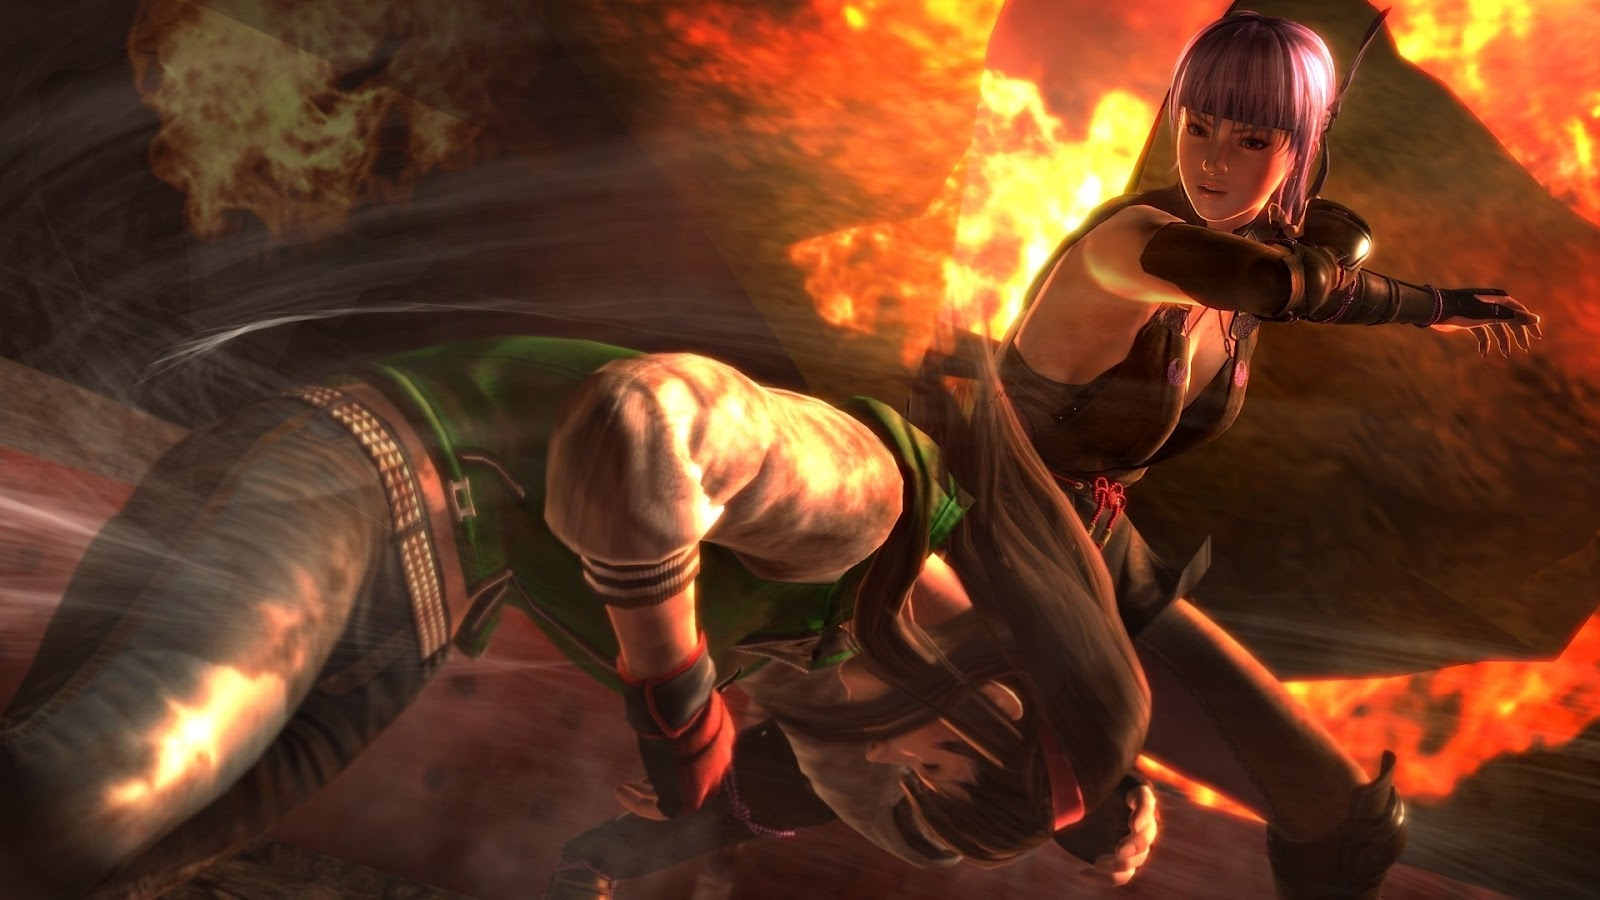 dead or alive 5 wallpapers 2 1600x900